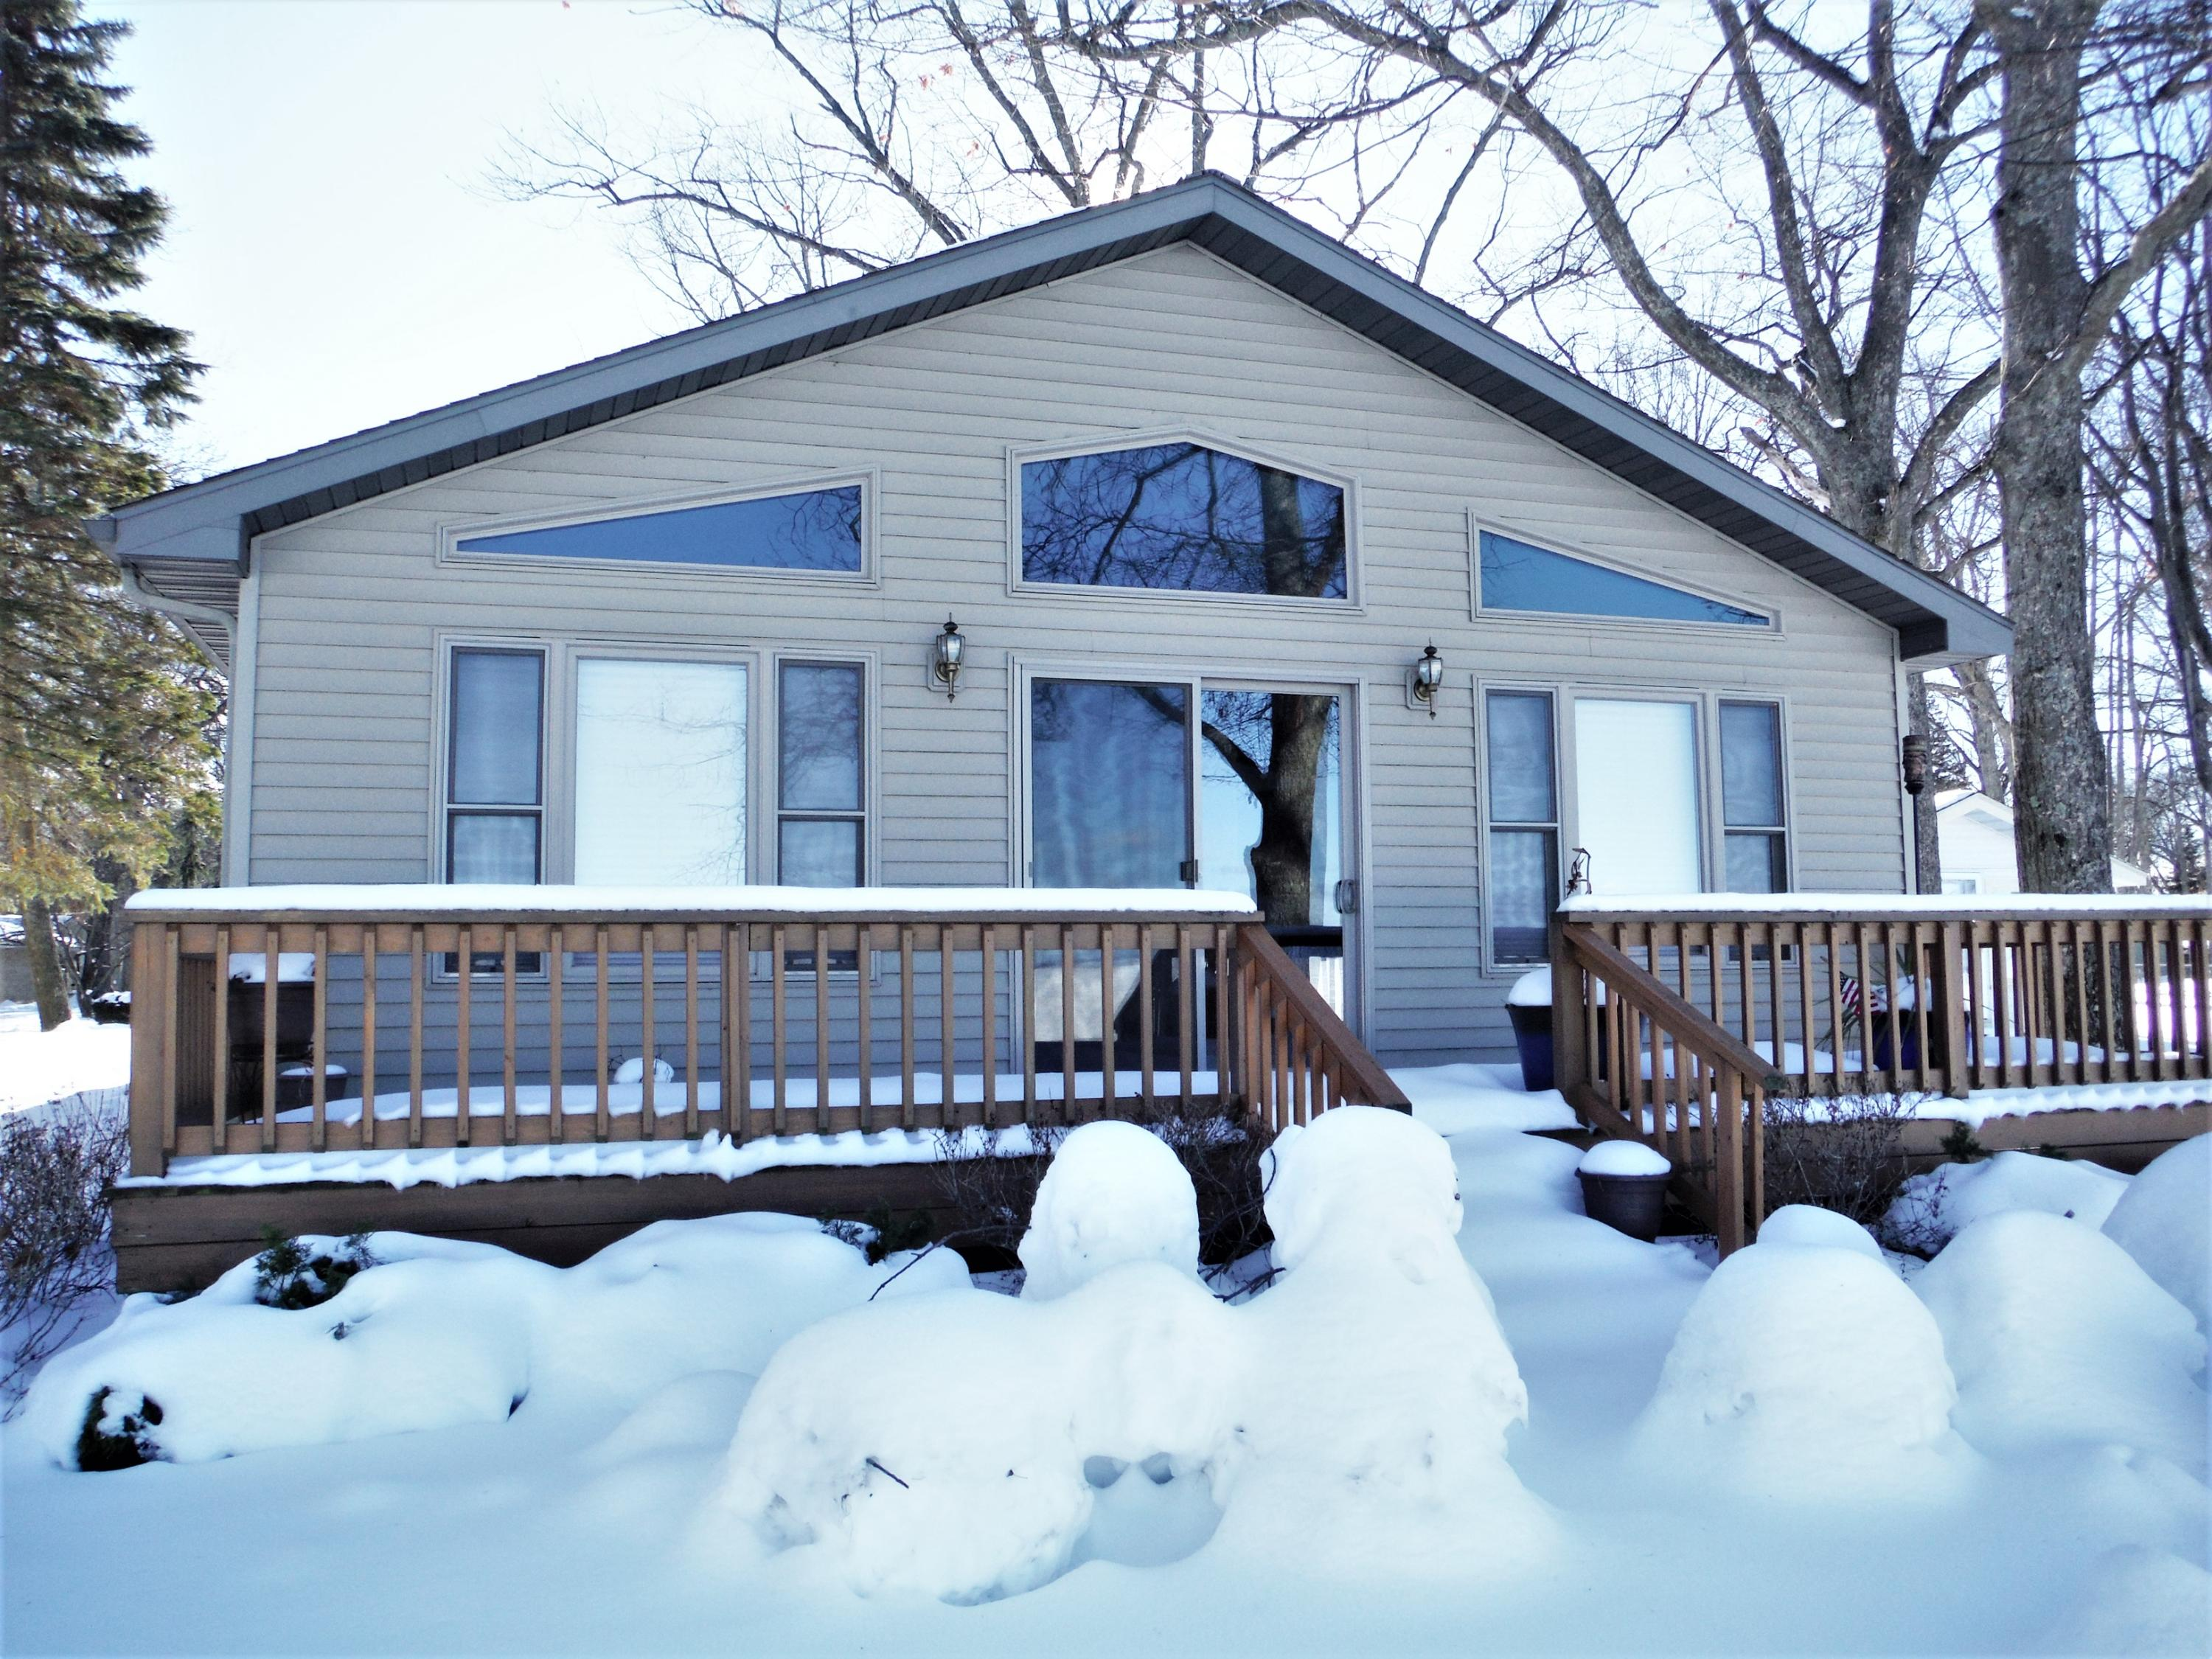 506 Houghton View Drive, Prudenville, MI 48651